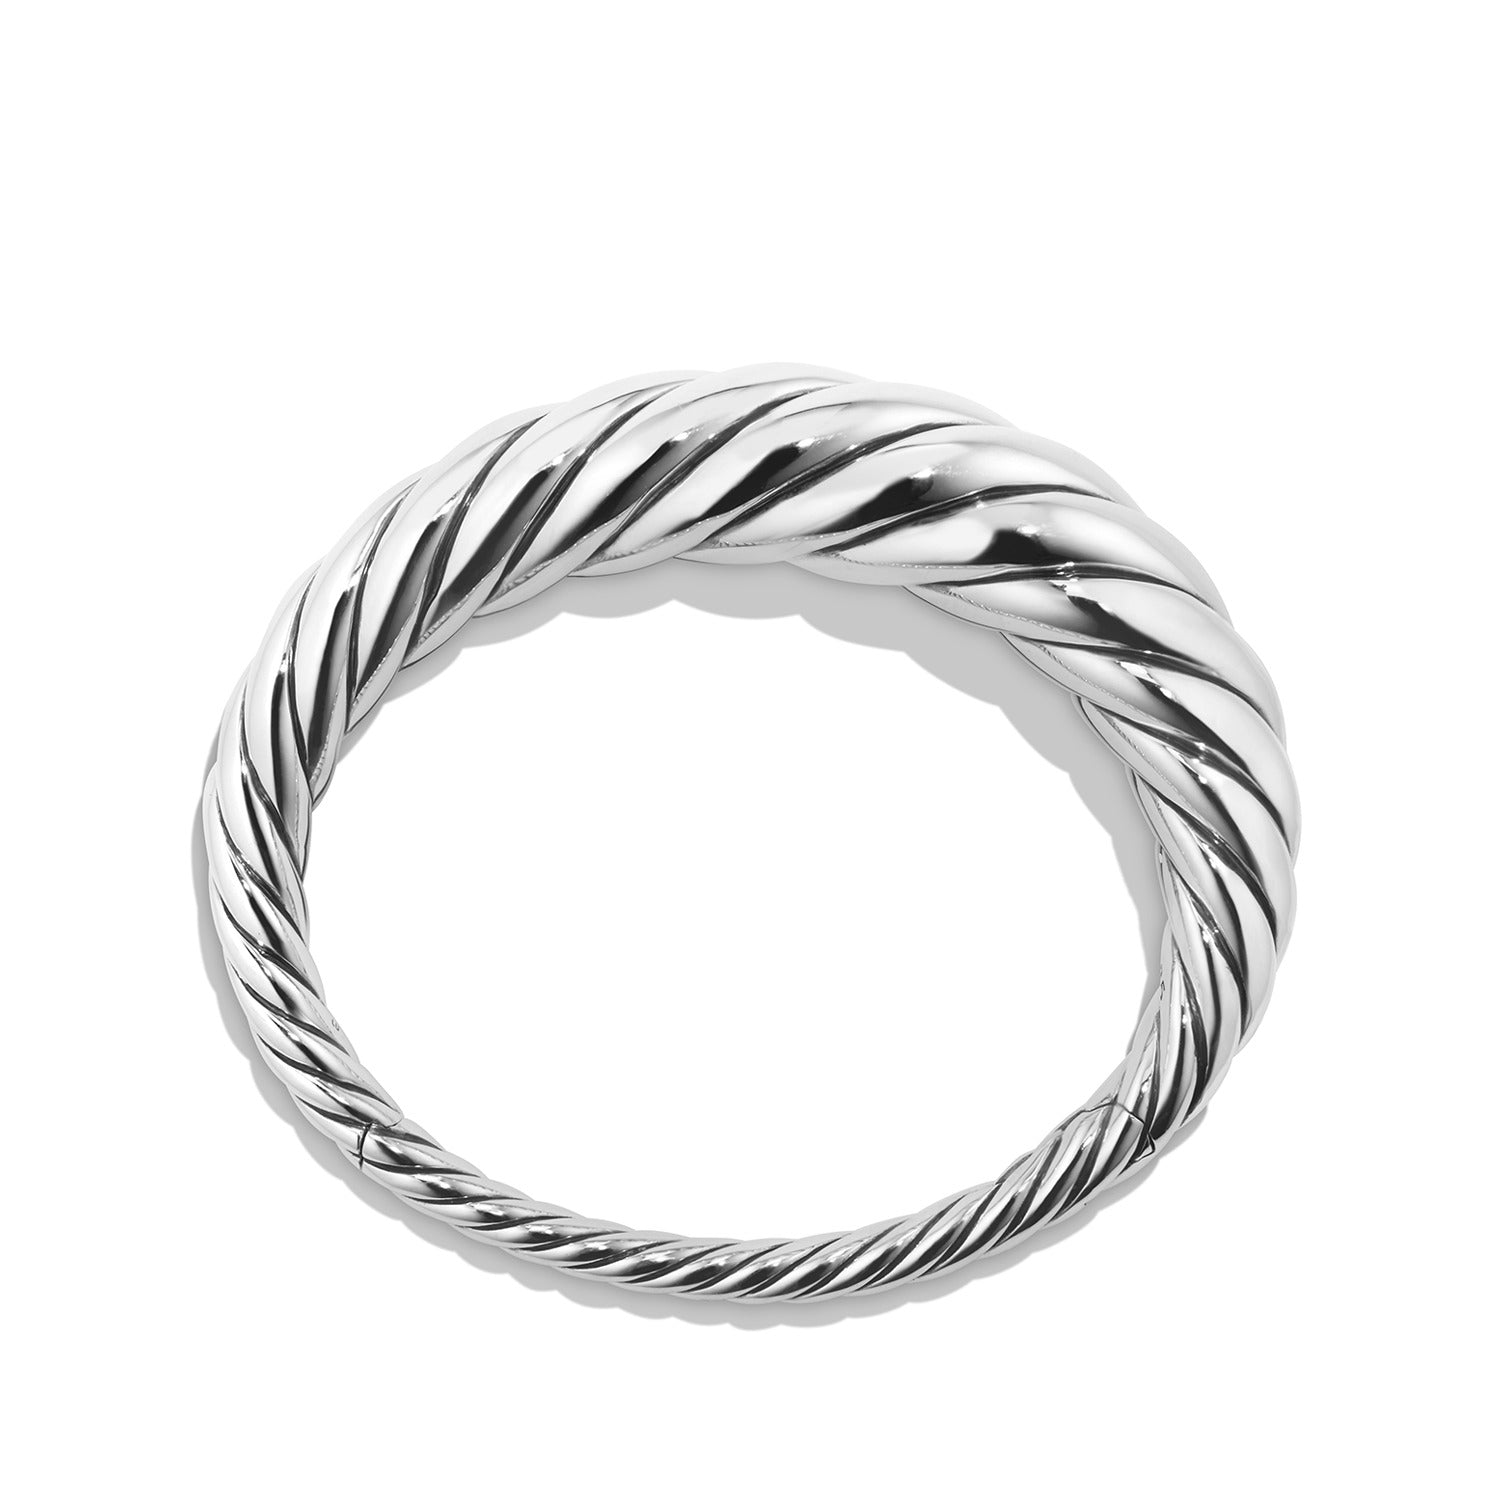 Pure Form Cable Bracelet, 17mm